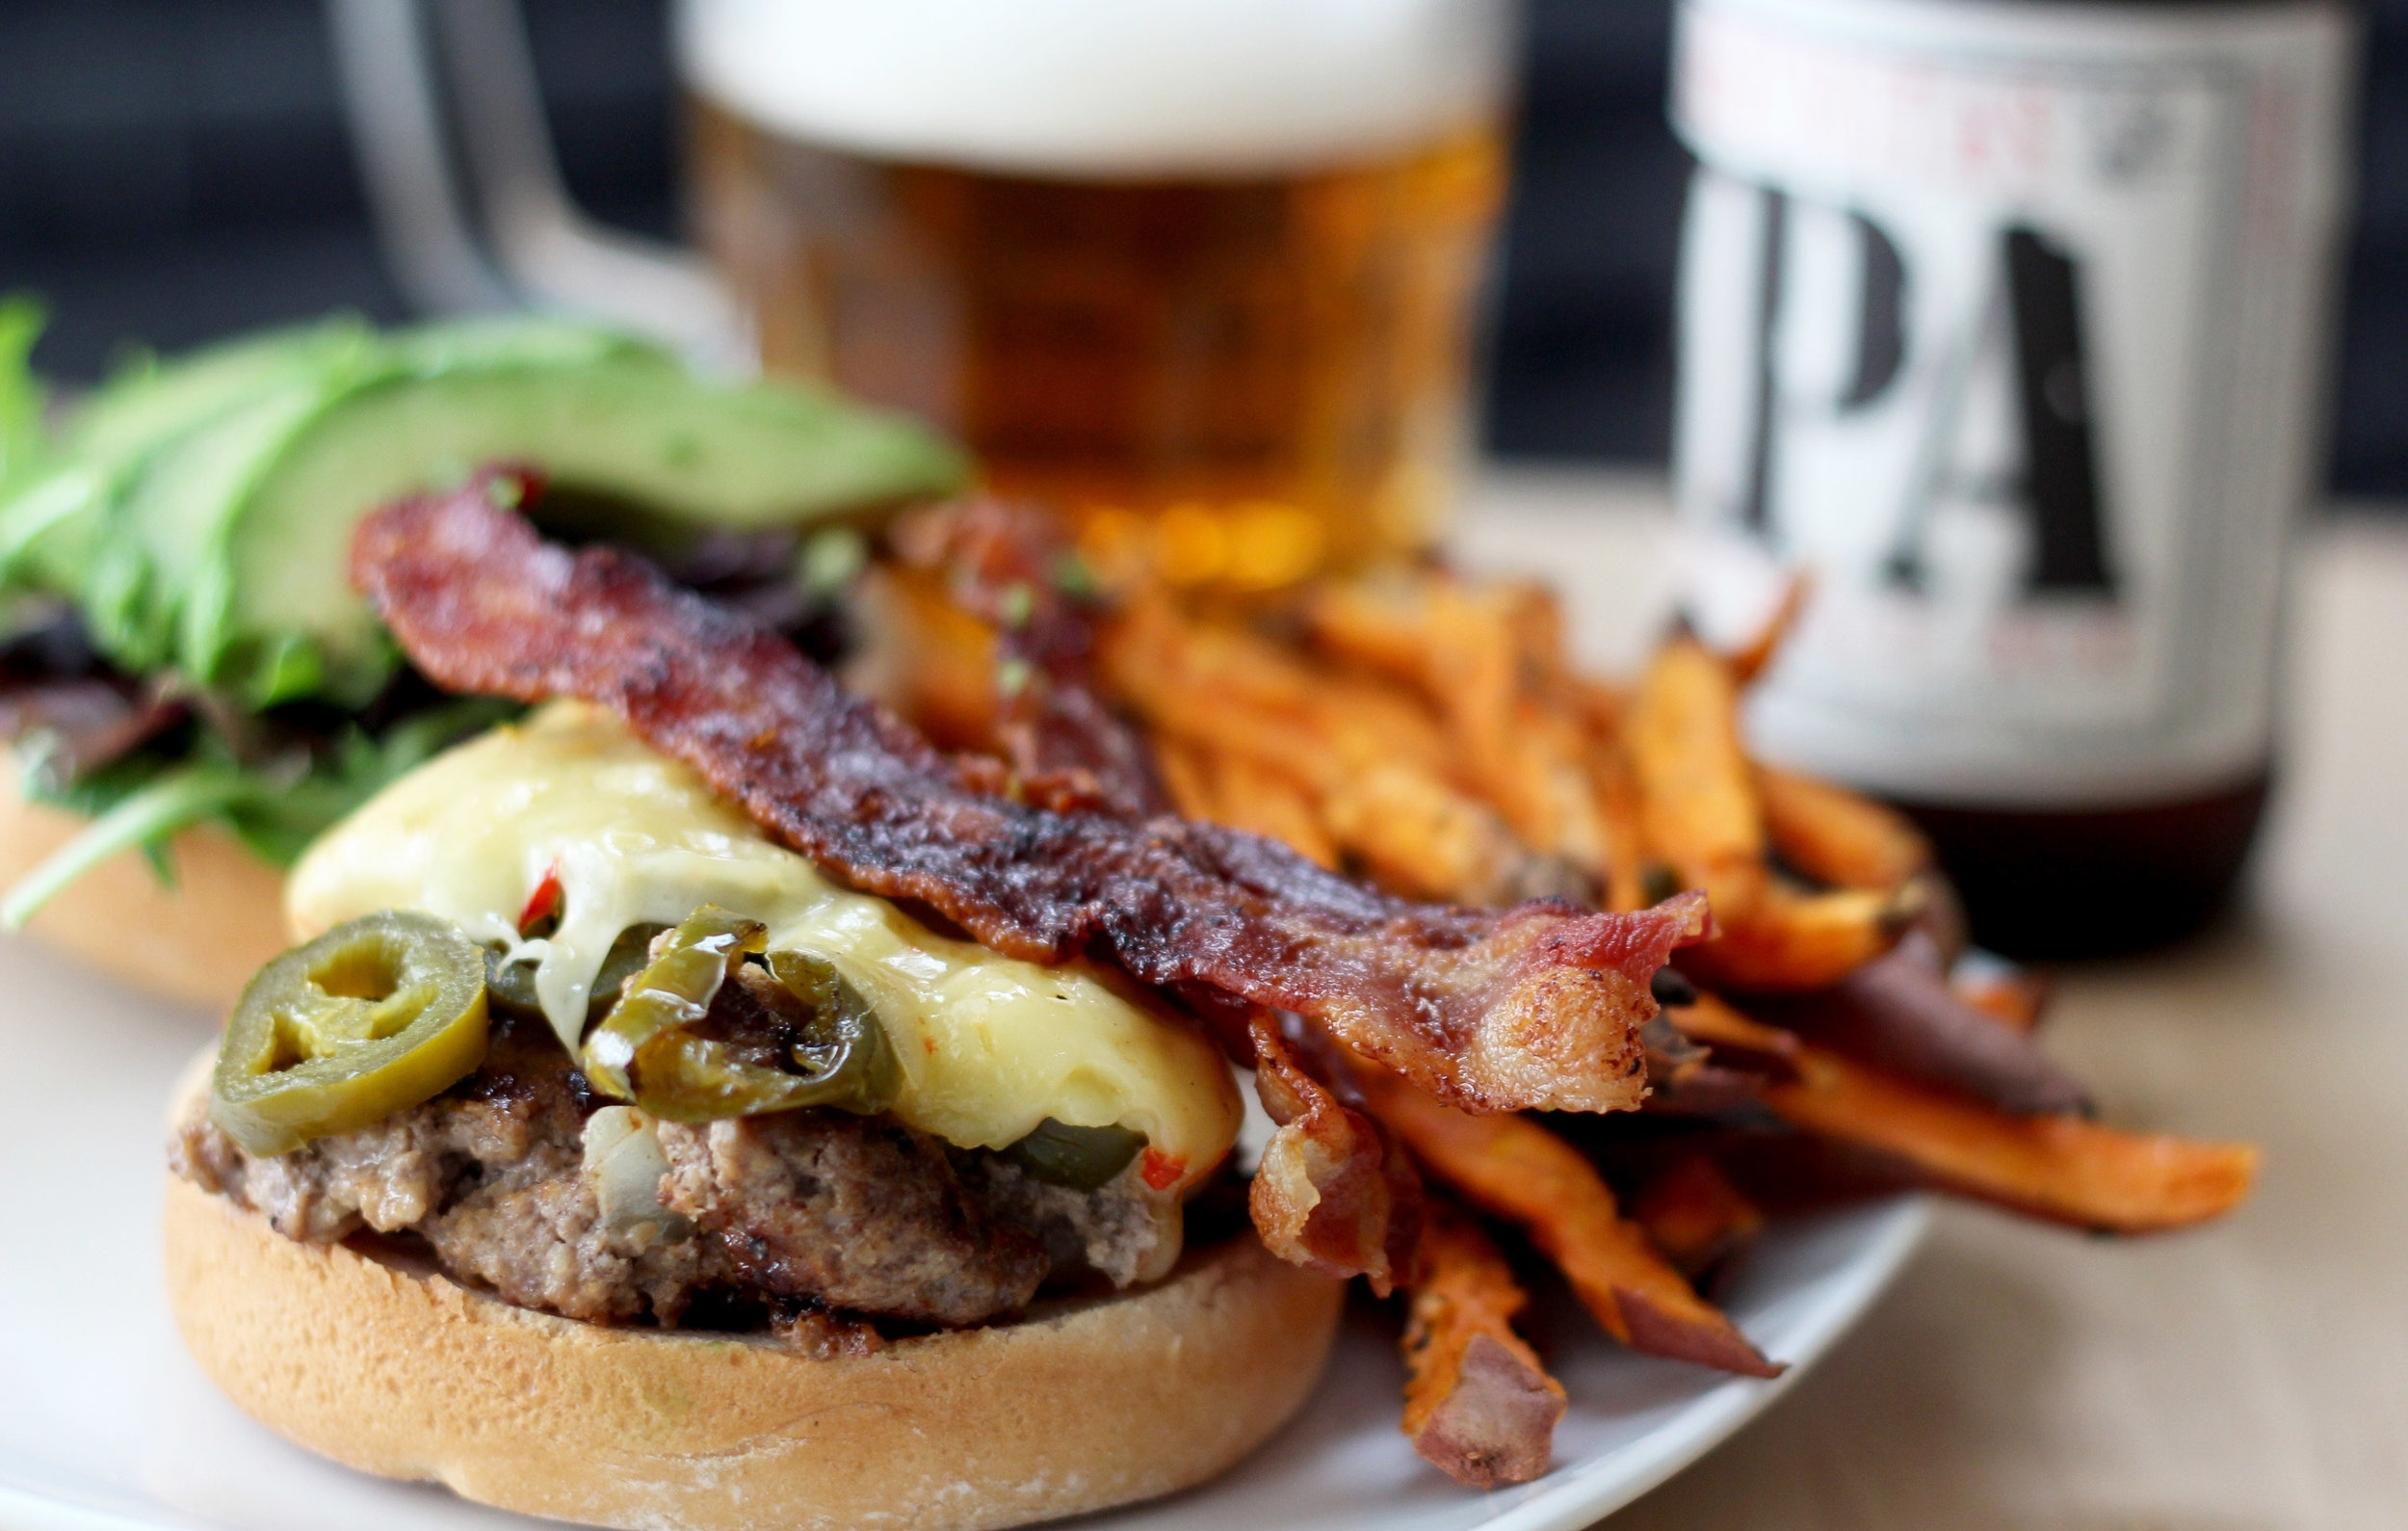 Spicy-Jalapeno-and-Bacon-IPA-Burger-with-Pepper-Jack-Cheese.jpg